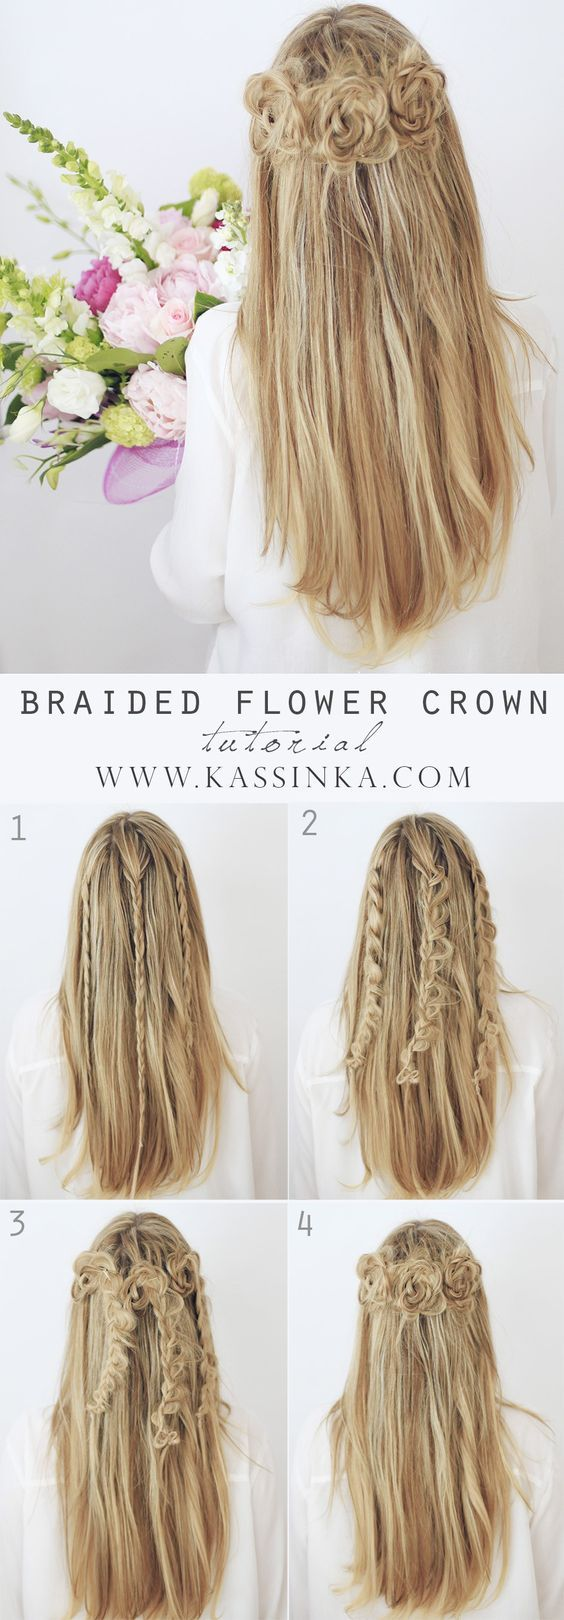 Super Easy DIY Braided Hairstyles for Wedding Tutorials | Wedding ...